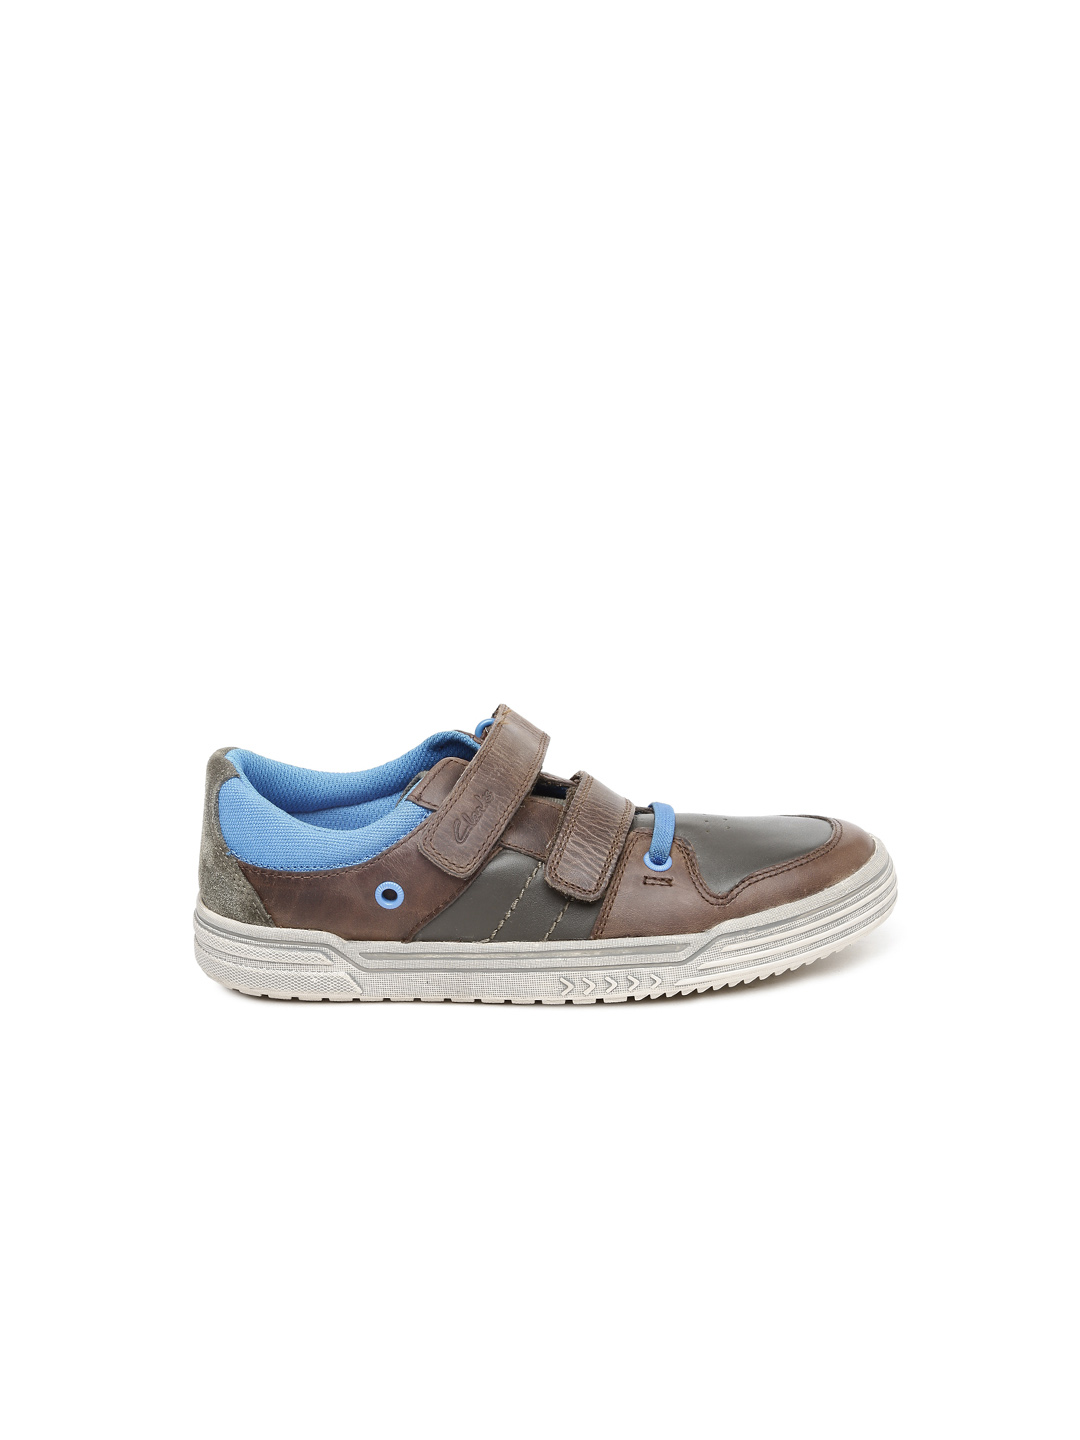 Clarks Boys Brown Chad Skate Leather Sneakers